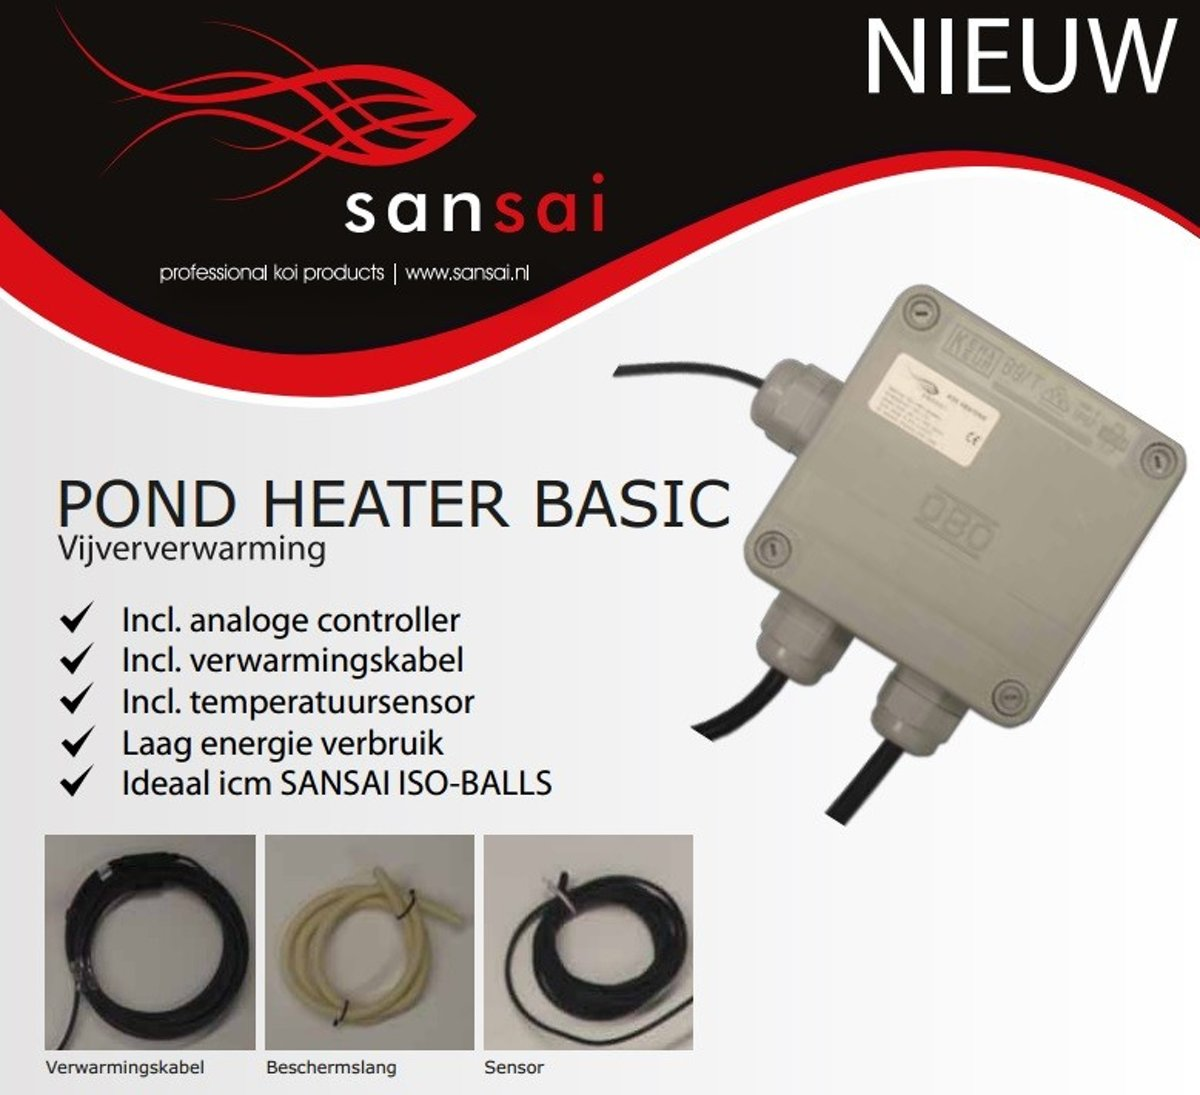 Sansai Pond Heater Basic 480 - 480W, 11m3 - 16m3, 16m kopen